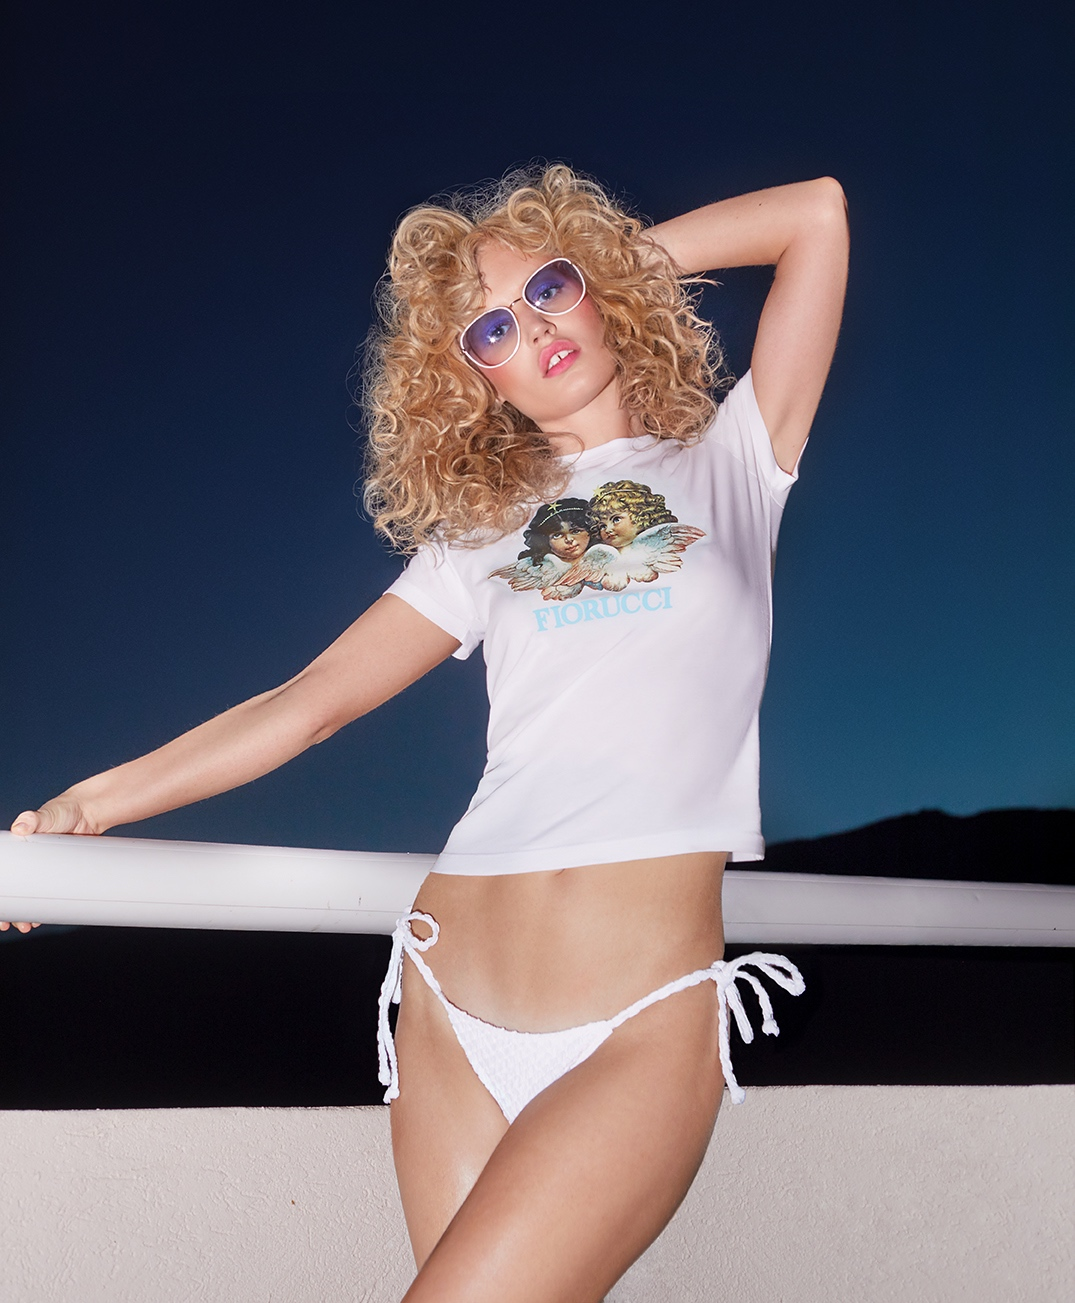 Georgia May Jagger for Fiorucci Summer 2017